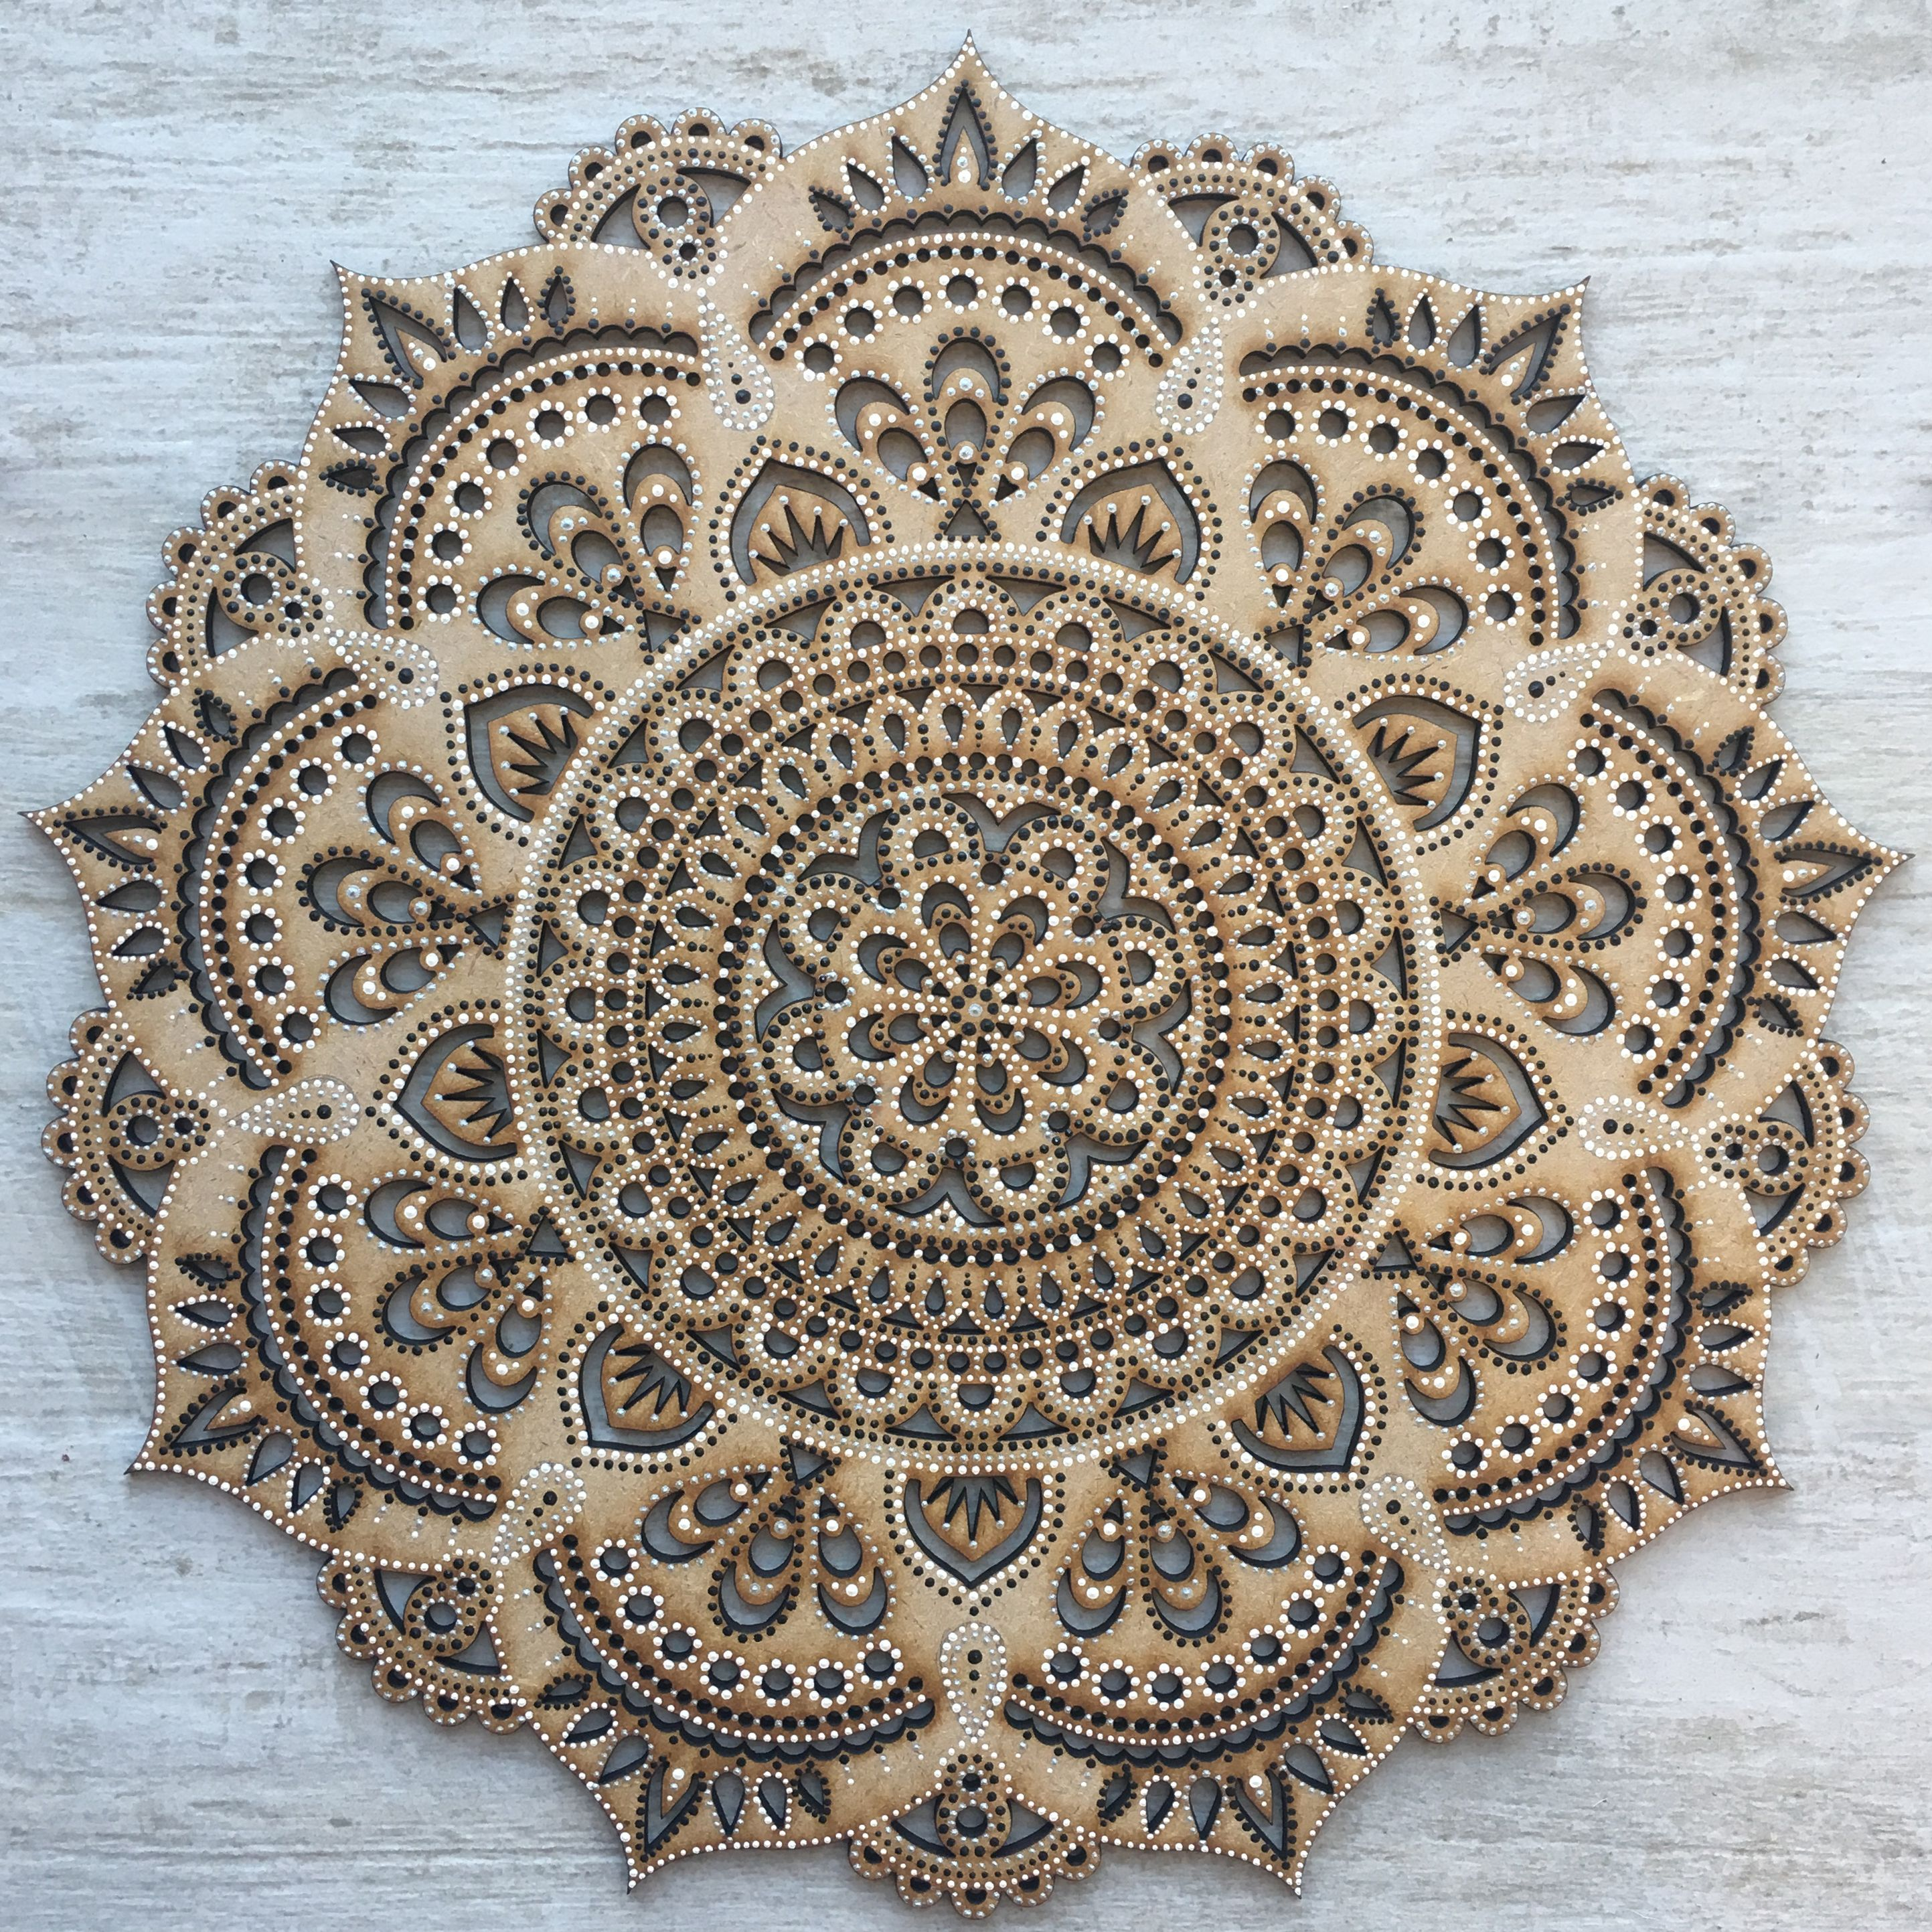 Hand Painted Laser Cut Wooden Mandala Wall Hanging By Wild Minds